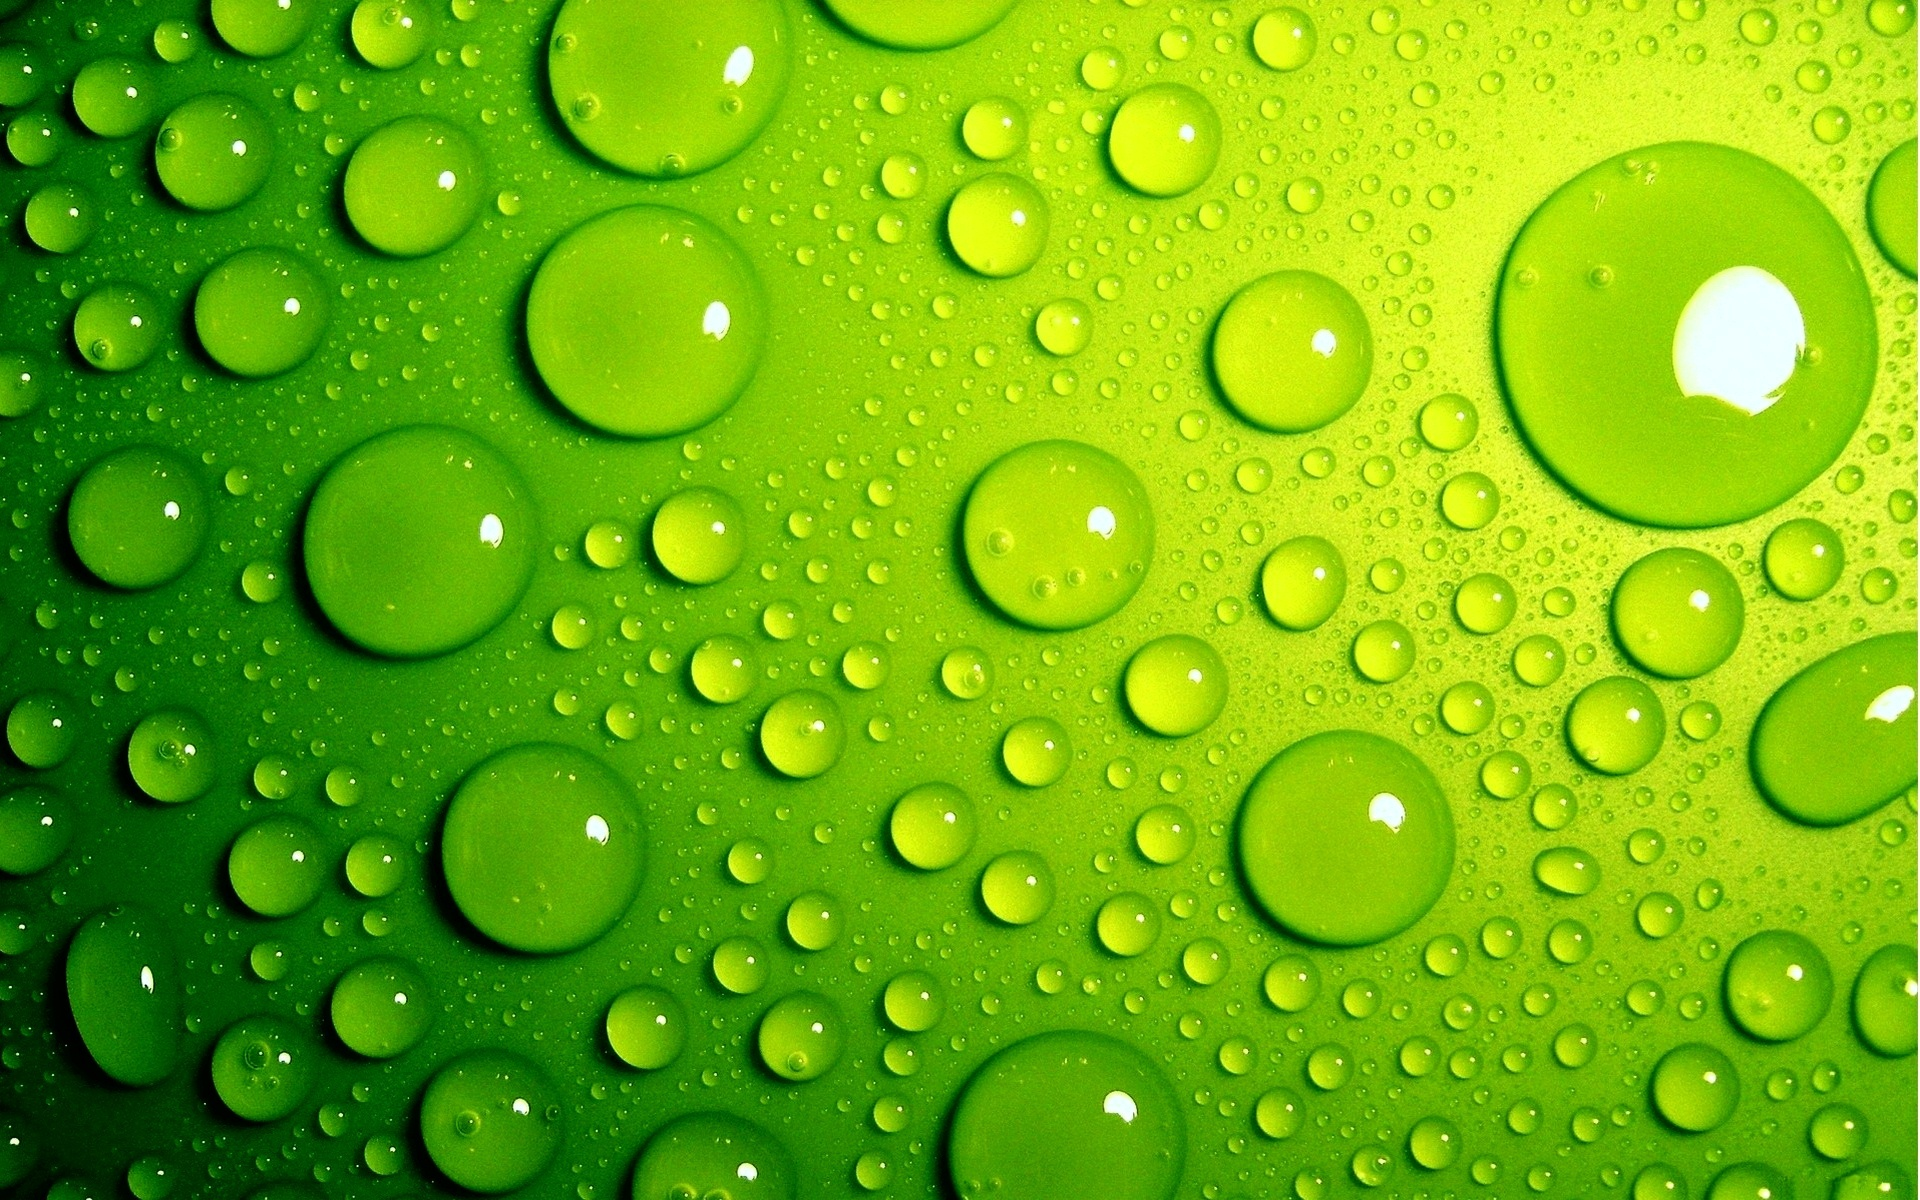 Green Water Wallpaper 17321 1920x1200 px